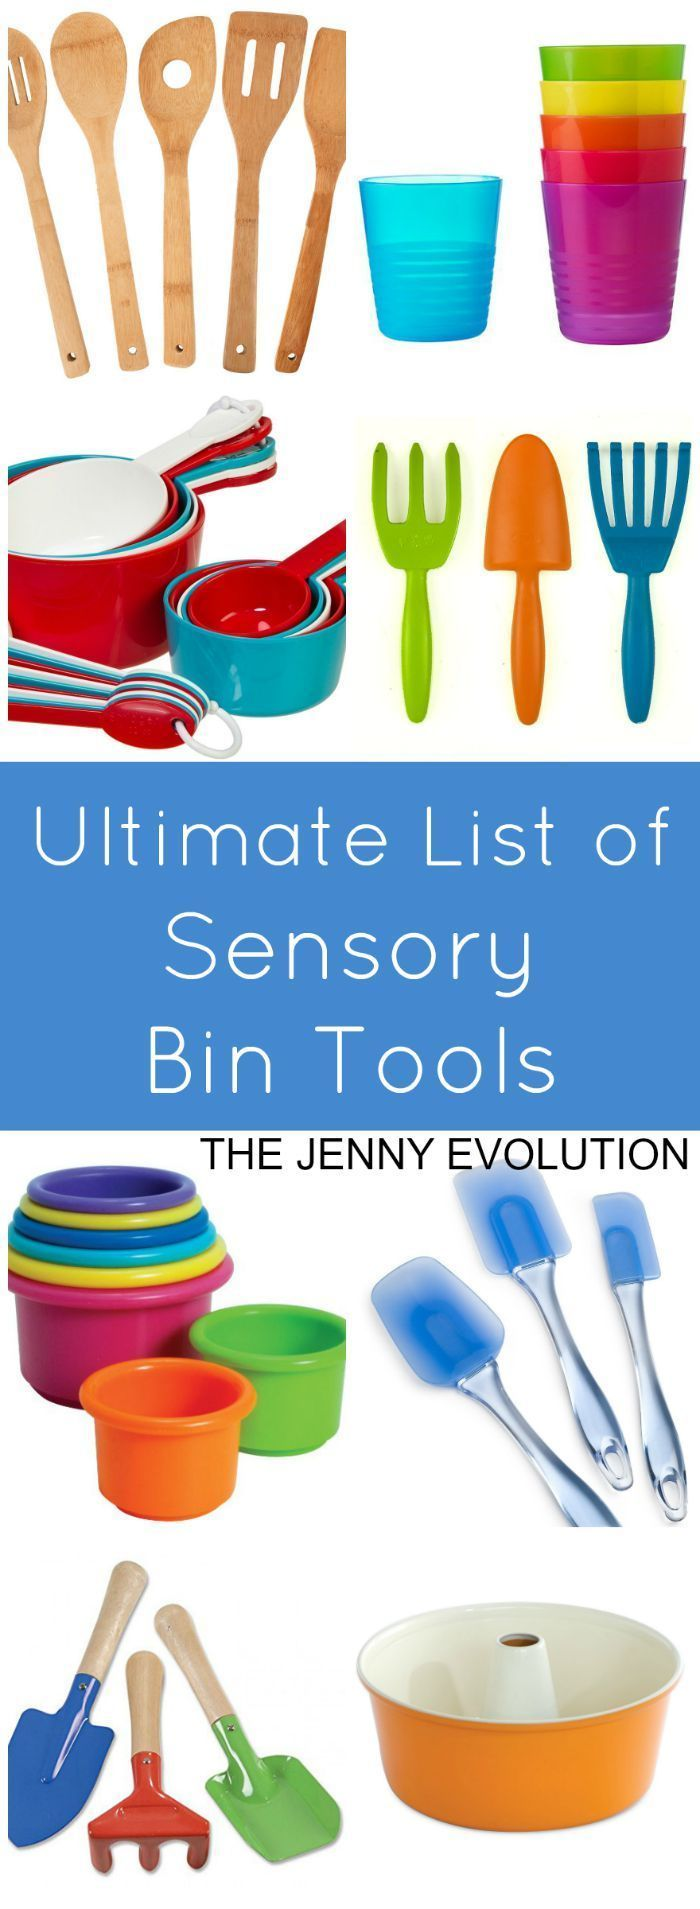 Ultimate List of Sensory Bin Tools